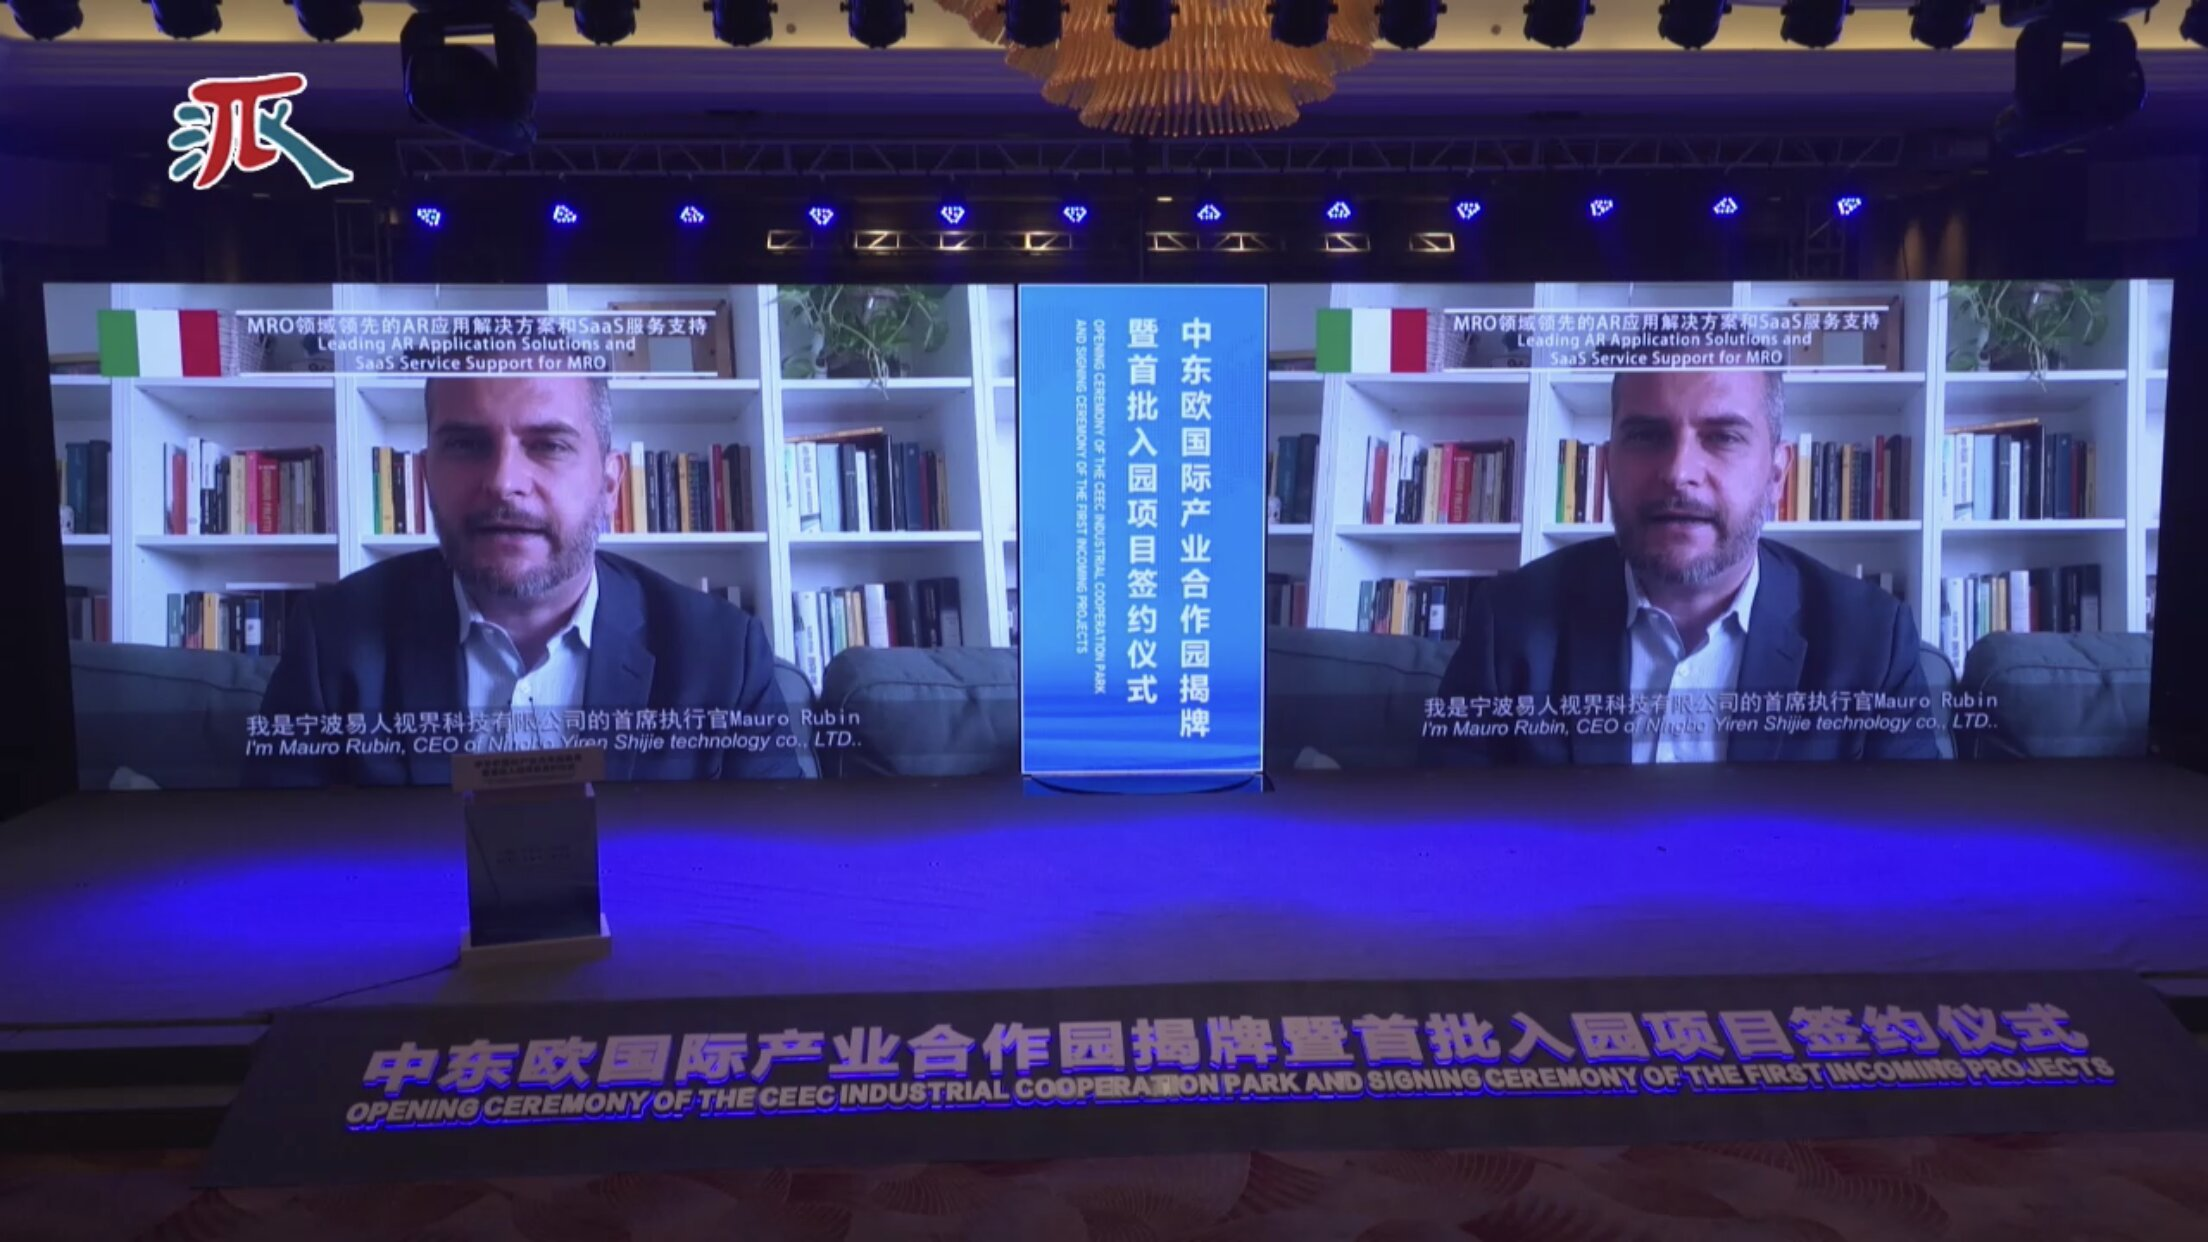 Mauro Rubin speaking online during the Opening Cerimony of CEEC Industrial Cooperation Park and Singing Cerimony of the first incoming projects in China